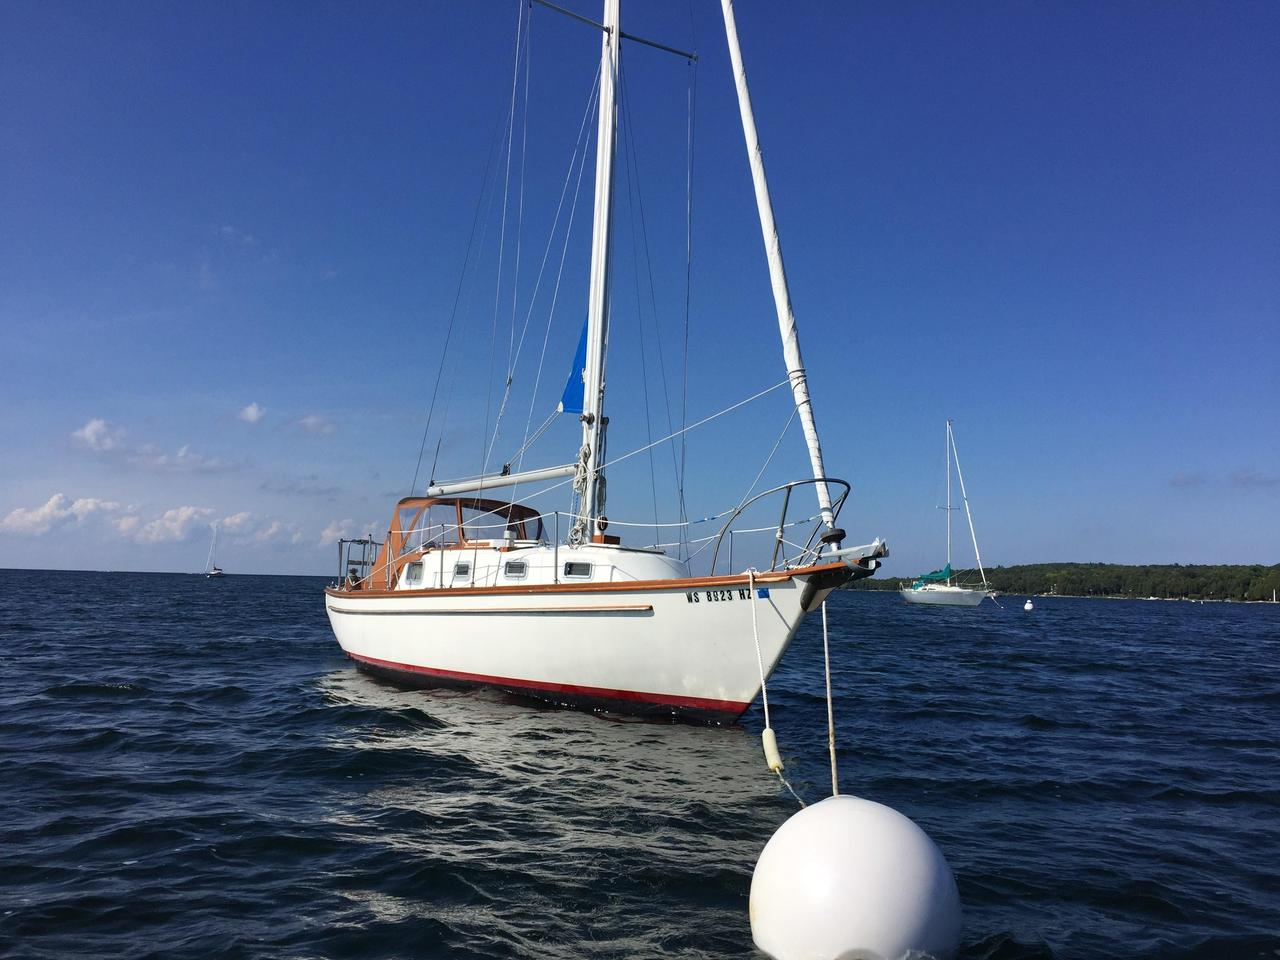 Dory Vis 1975 Used Cape Dory 28 Sloop Sailboat For Sale 22 000 Sister